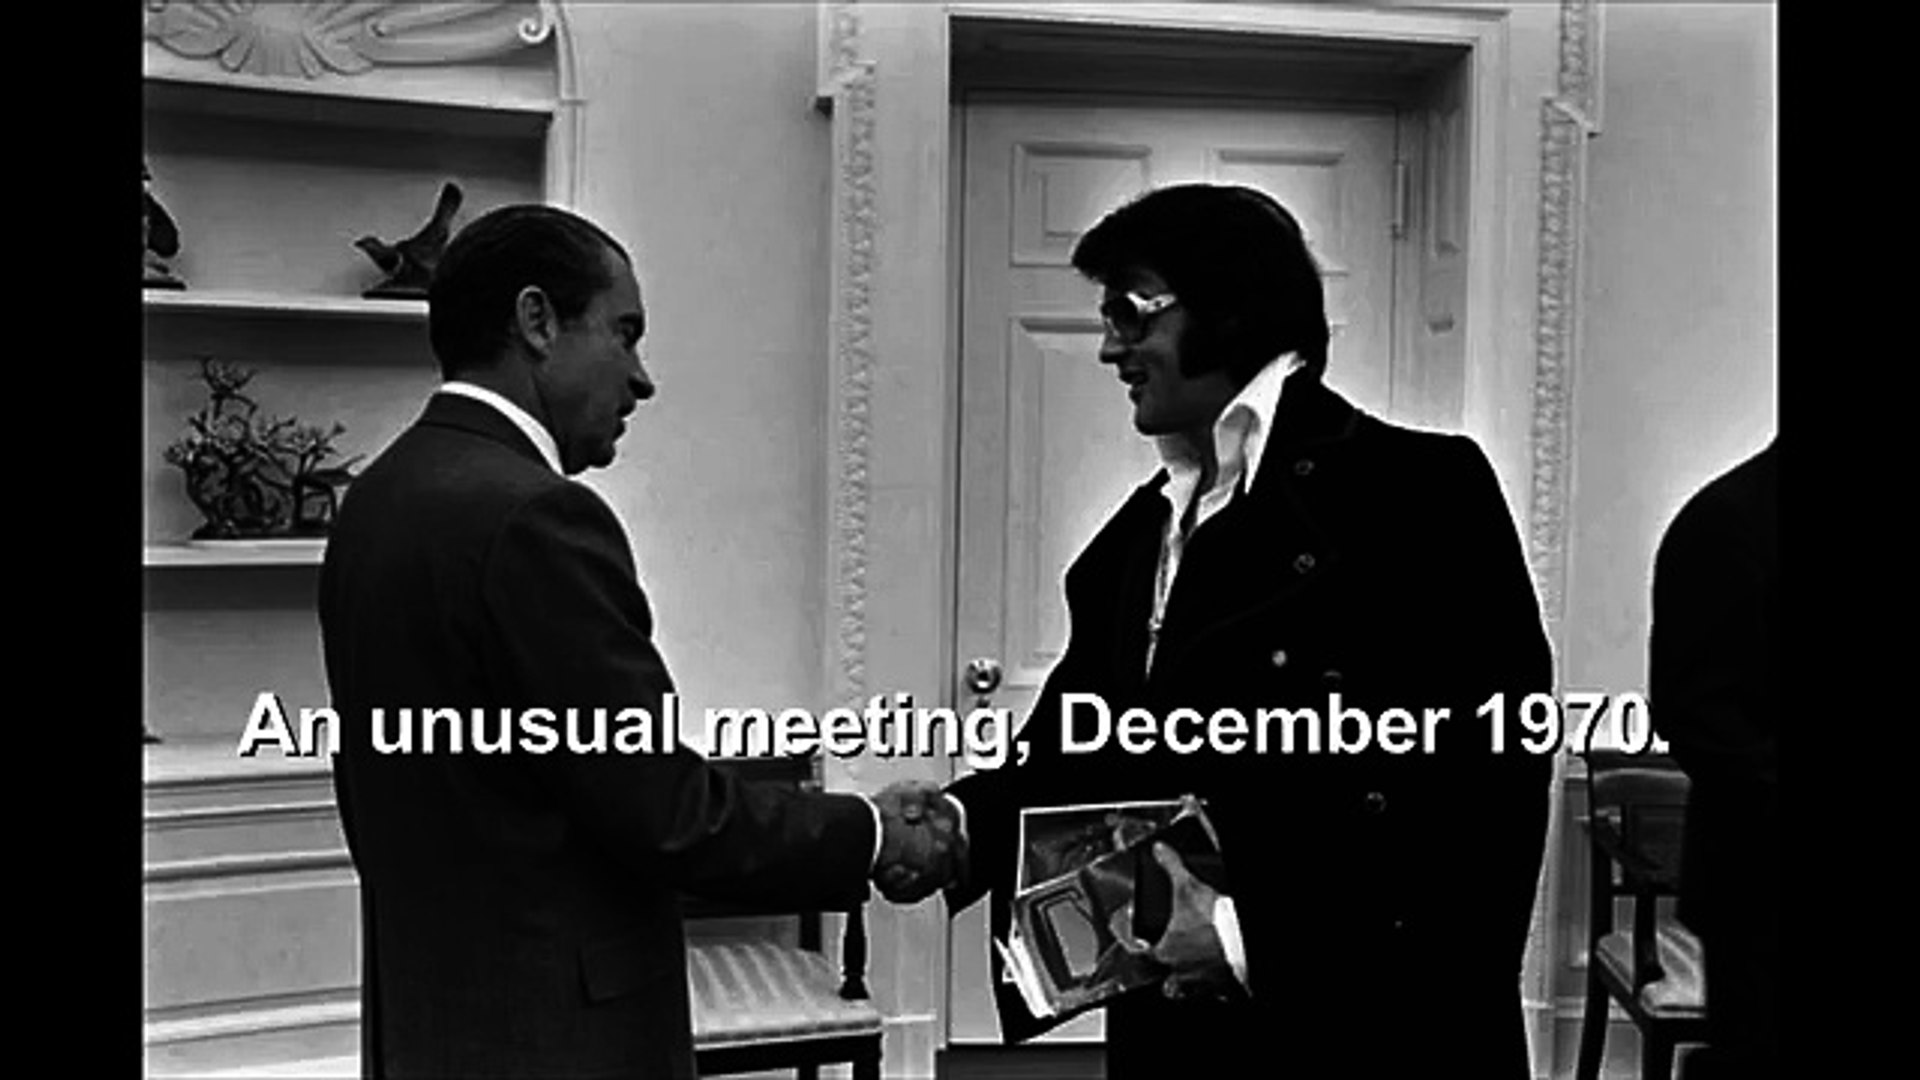 Elvis Presley and President Nixon at the White House  December 21, 1970 2